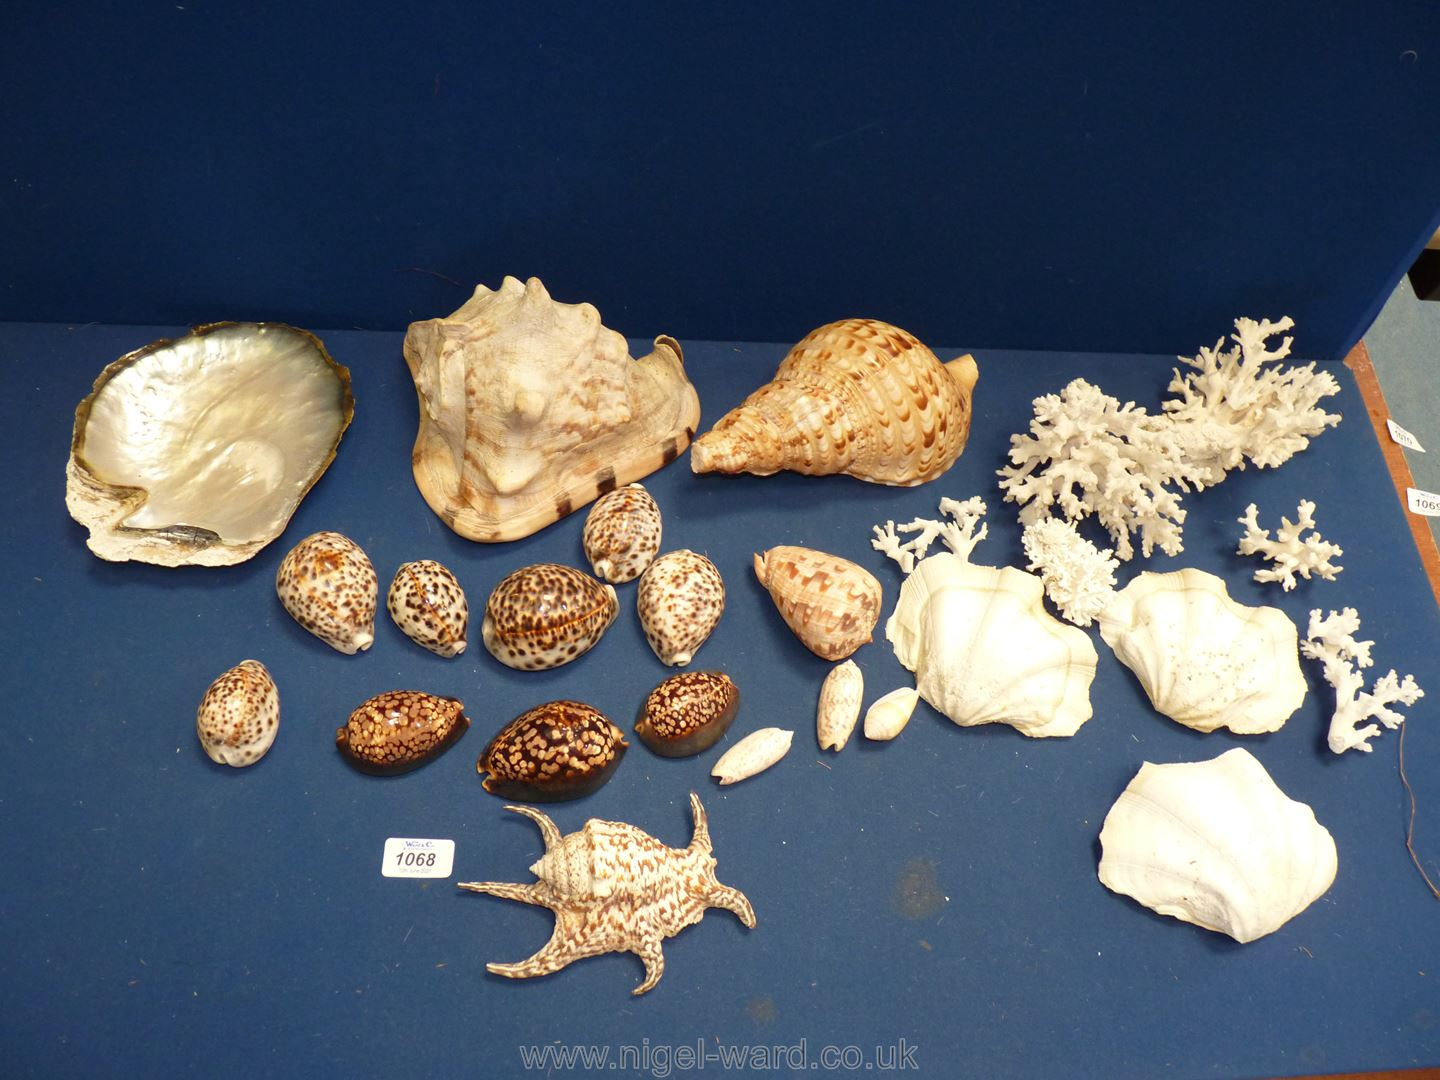 A quantity of shells including a large conch, oyster shell, coral cowries, clam shells, etc.